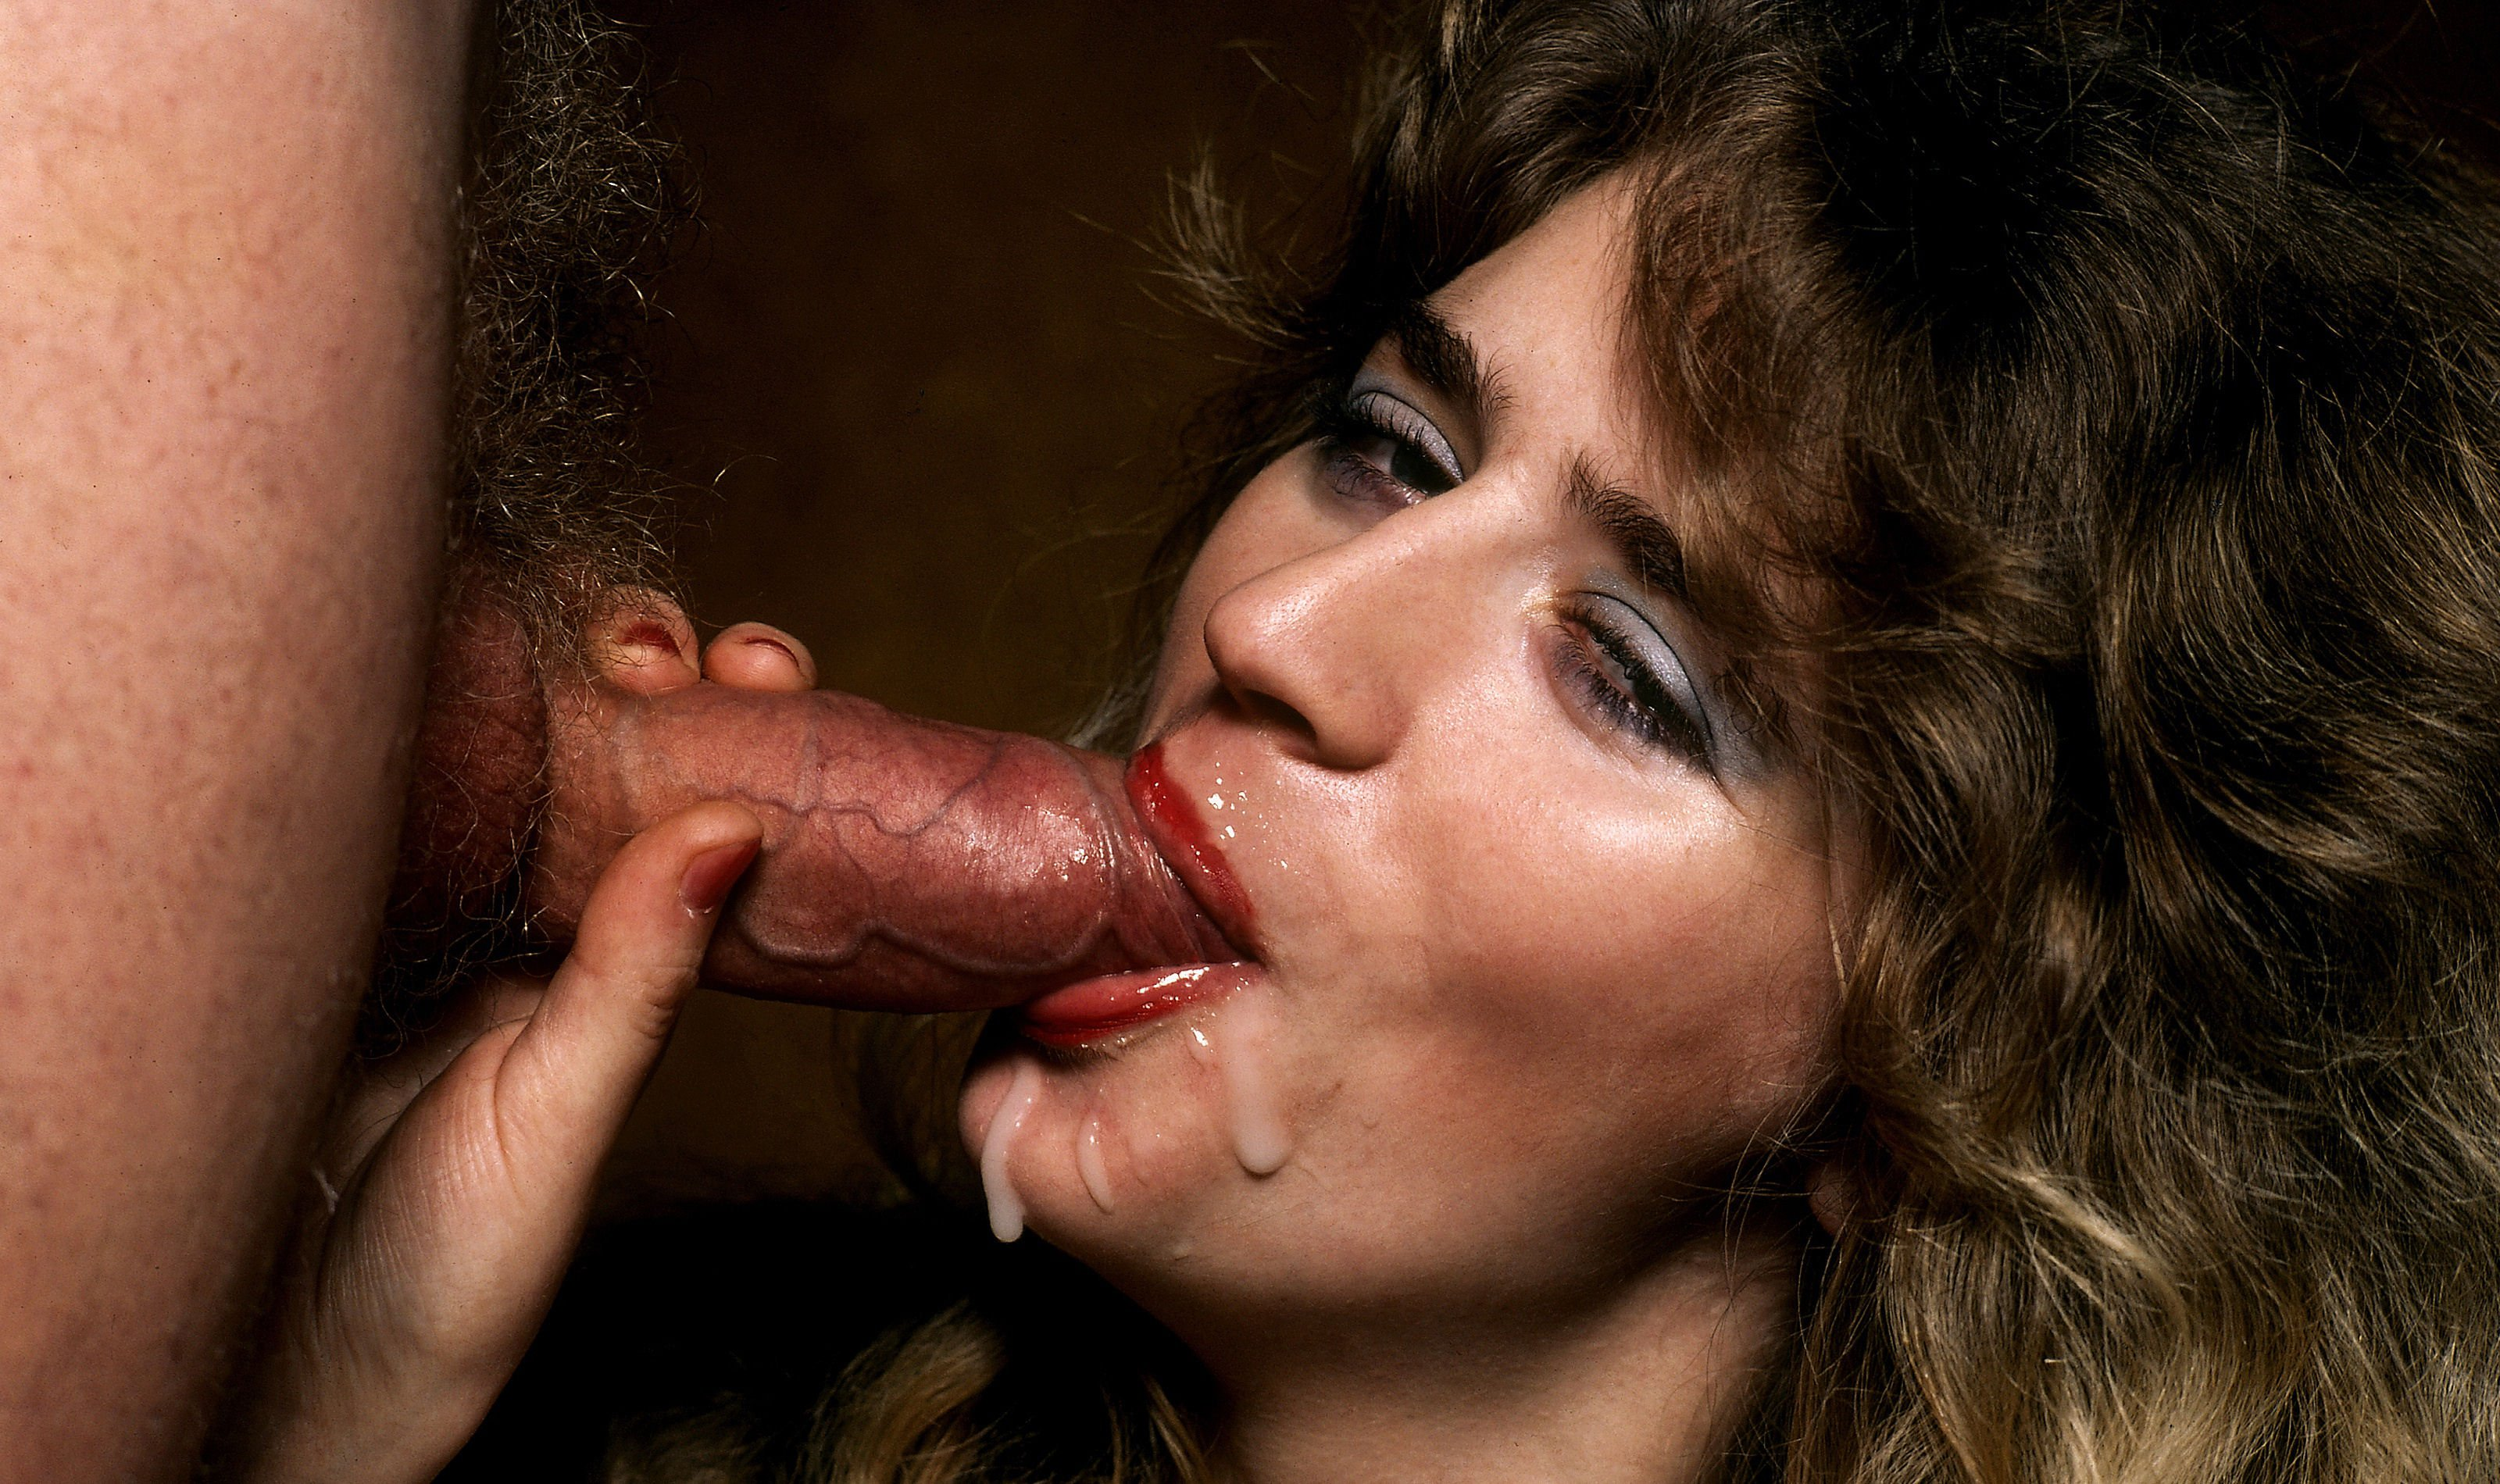 hairy-female-oral-sex